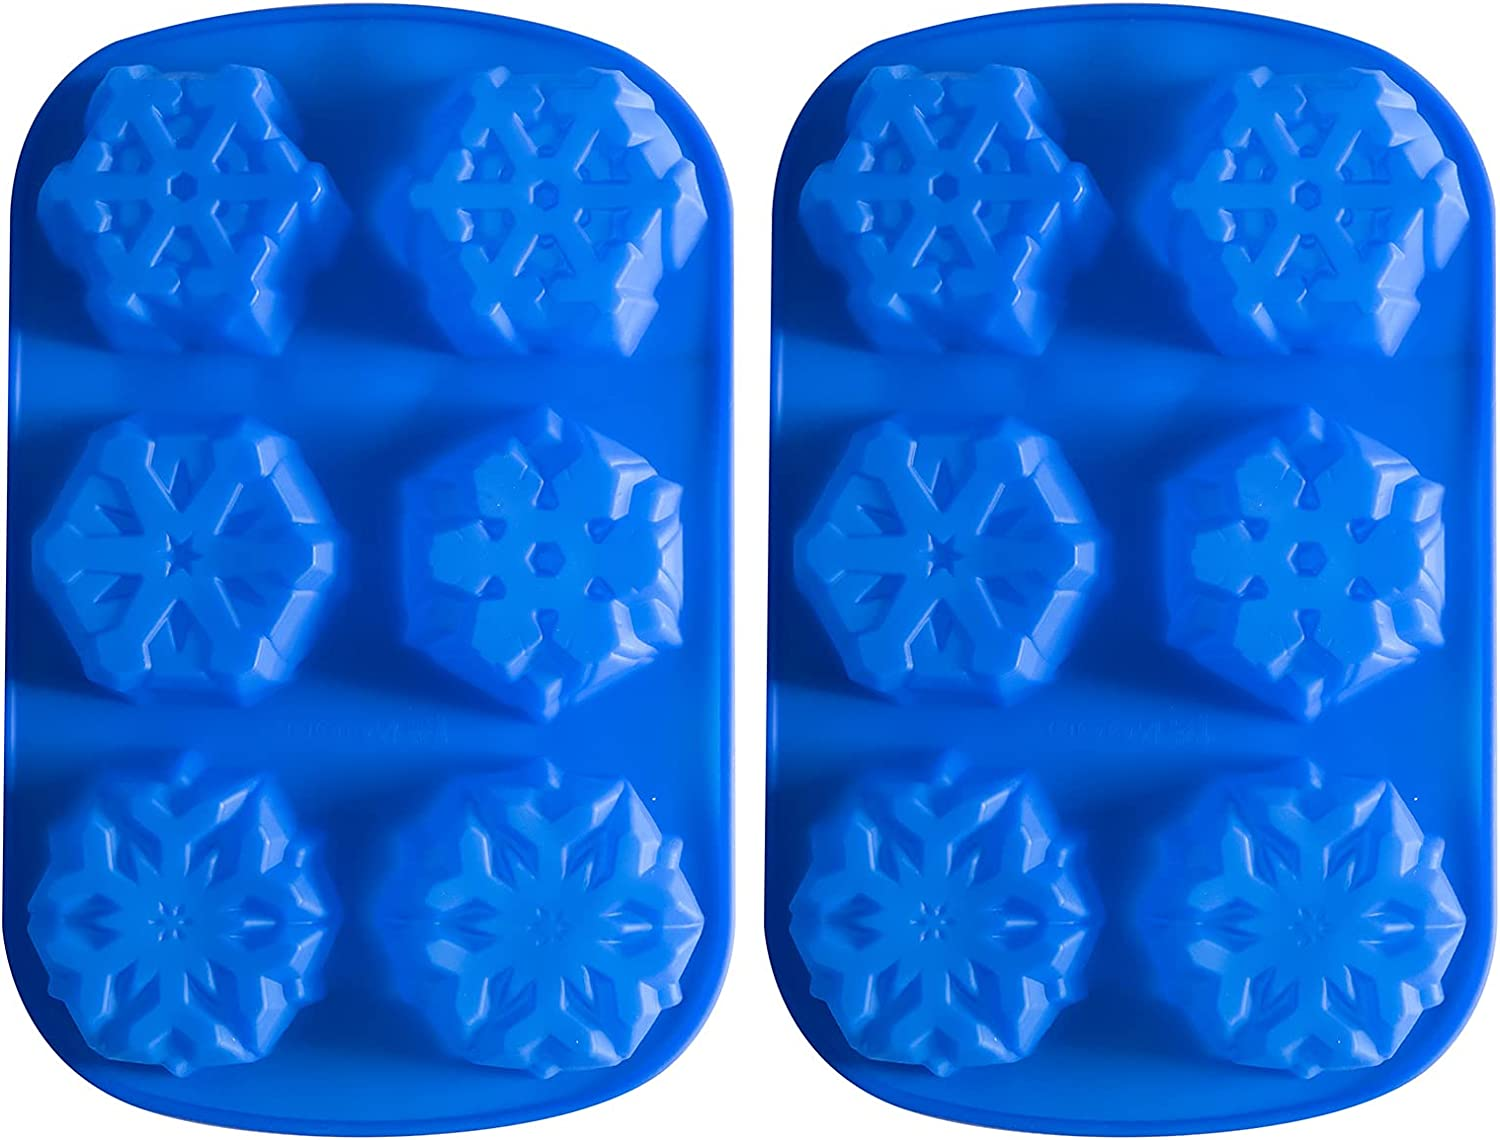 6 Free Shipping Cheap Bargain Gift Even Snowflakes Silicone New Free Shipping Cake Mold 2 Bath Bombs St Pack 4